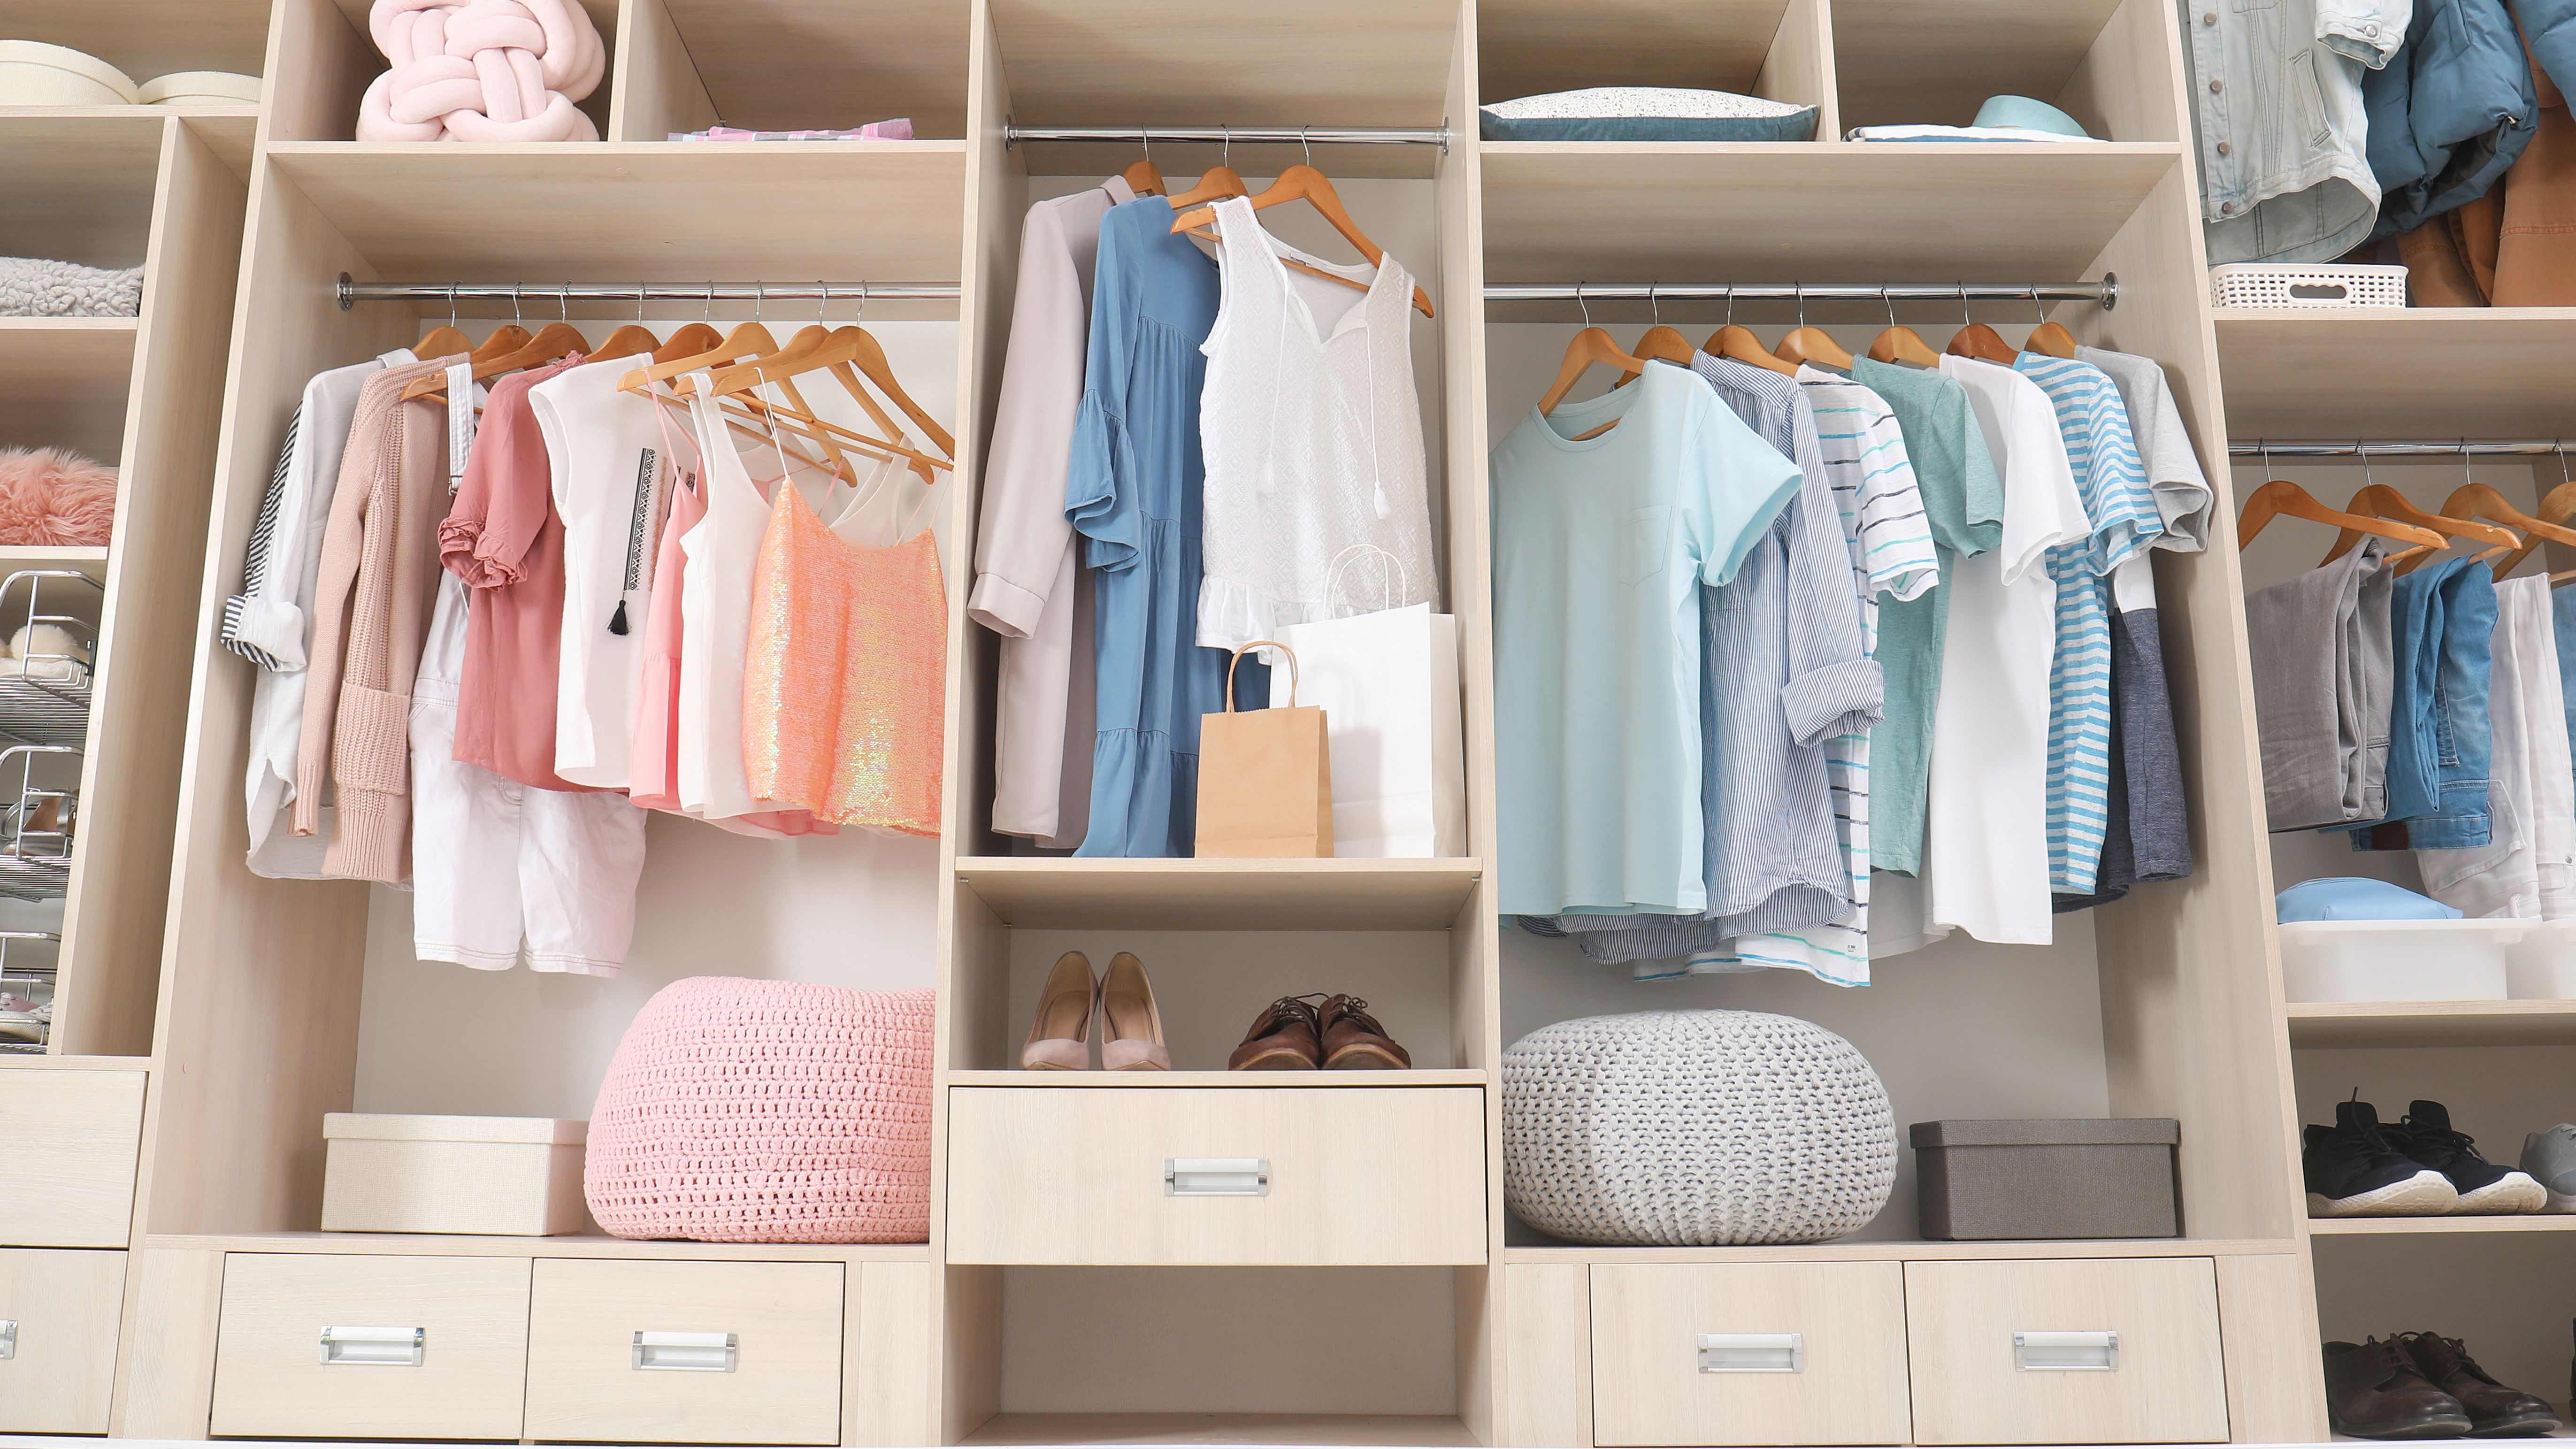 How to choose between having a wardrobe or a large bathroom?